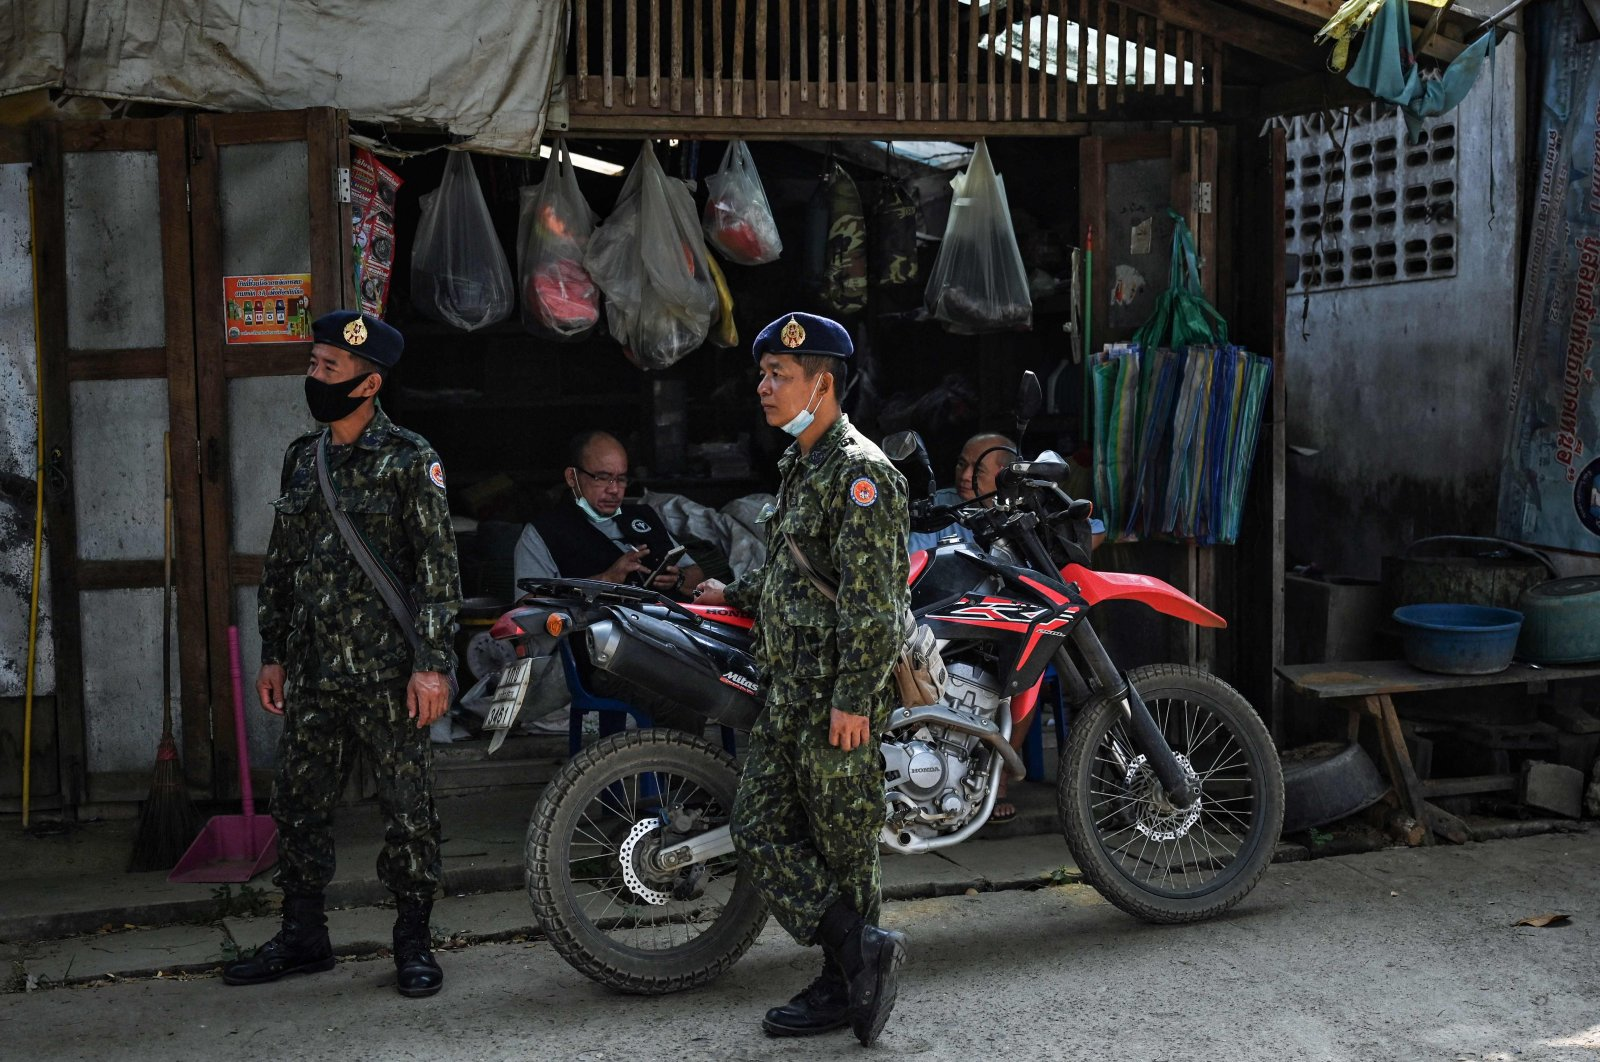 Thai soldiers stand outside a shop in Mae Sam Laep town in Mae Hong Son province, Thailand, March 31, 2021. (AFP Photo)